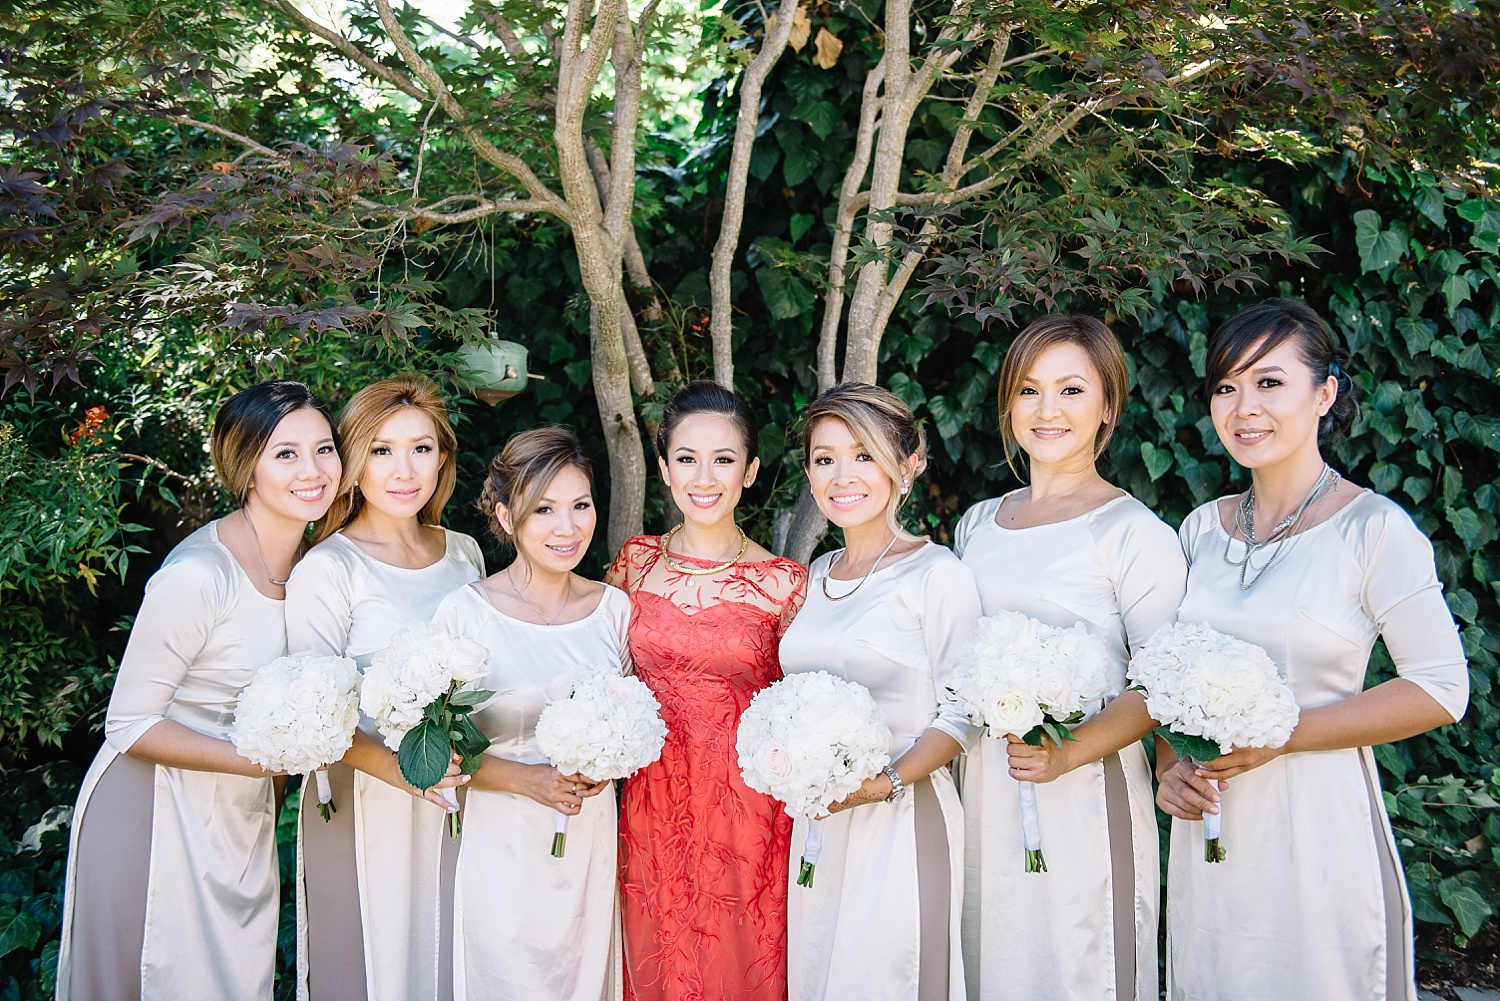 jennifer-jayn-photography-los-altos-wedding-vietnamese-tea-ceremony_0015.jpg